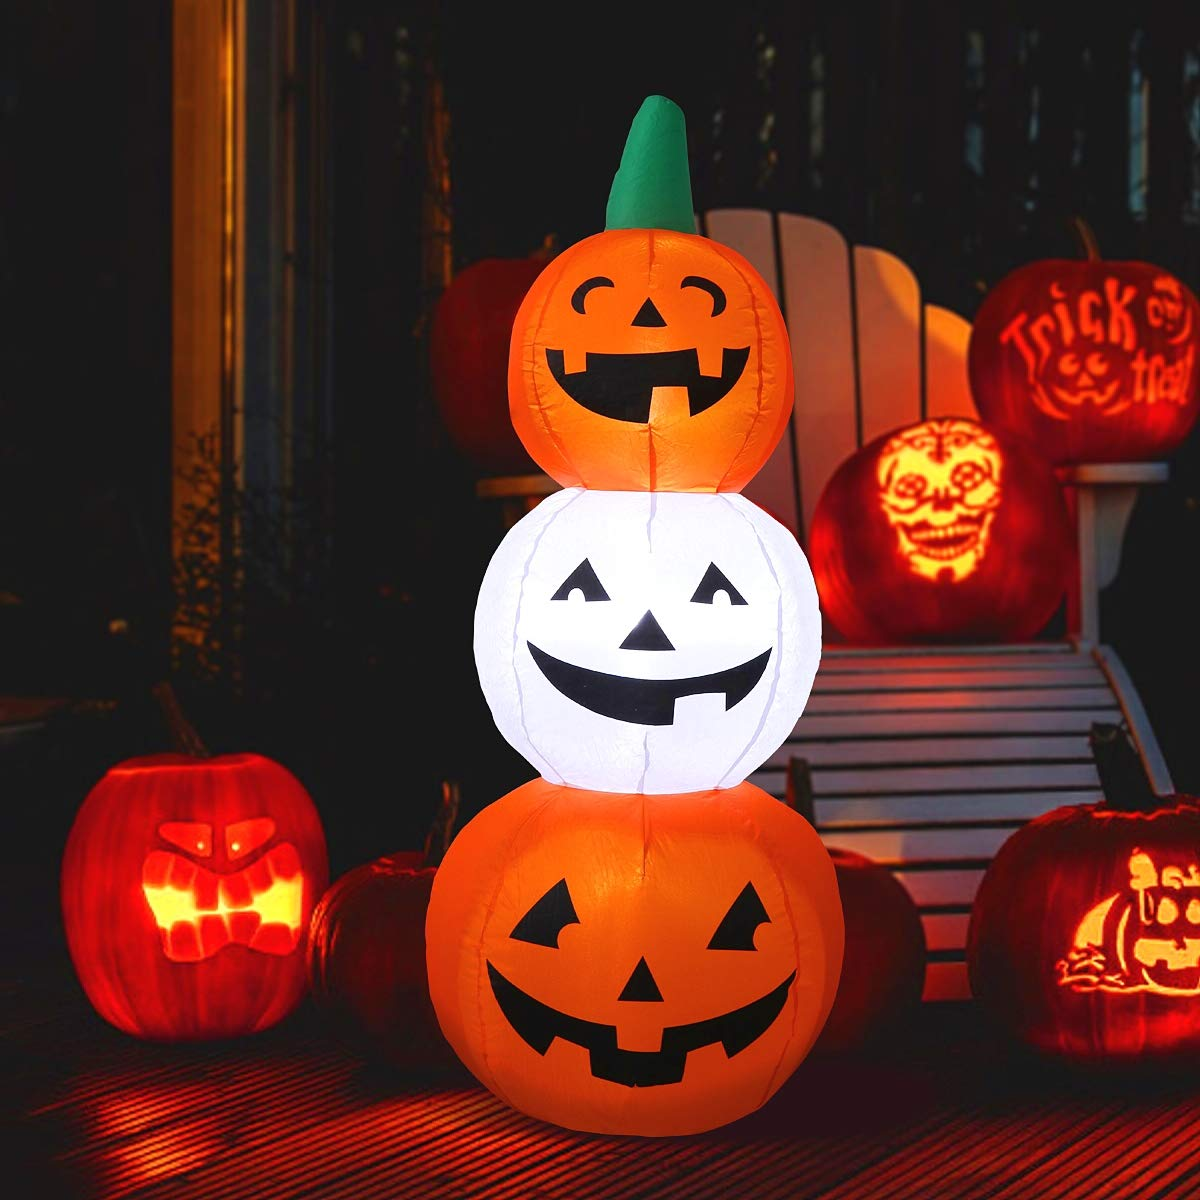 MAOYUE 4.3ft Halloween Inflatables Pumpkin Decorations Outdoor Halloween Blow Up Decorations Built-in LED Lights with Stakes, Inflatable Decorations for Outdoor, Yard, Garden, Lawn, Party